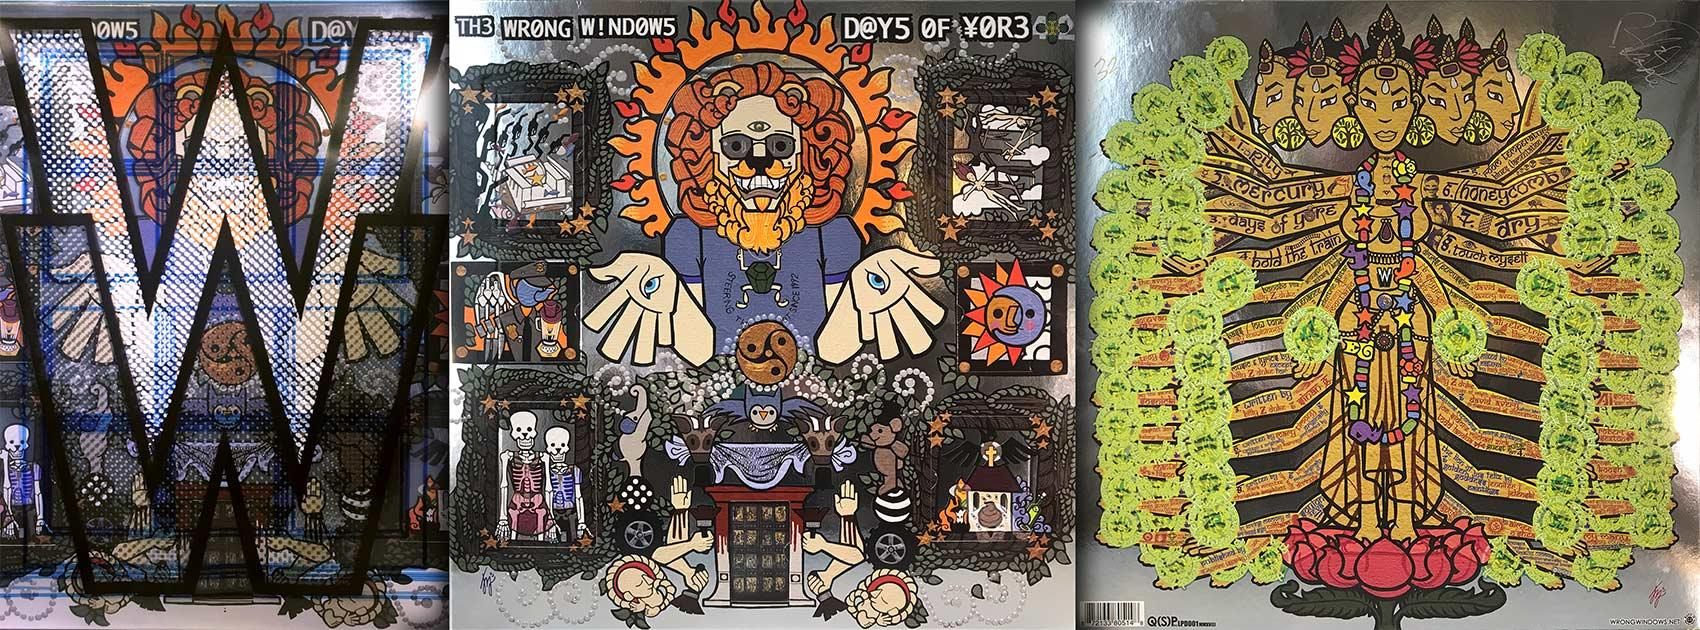 Days of Yore Vinyl Slipcase